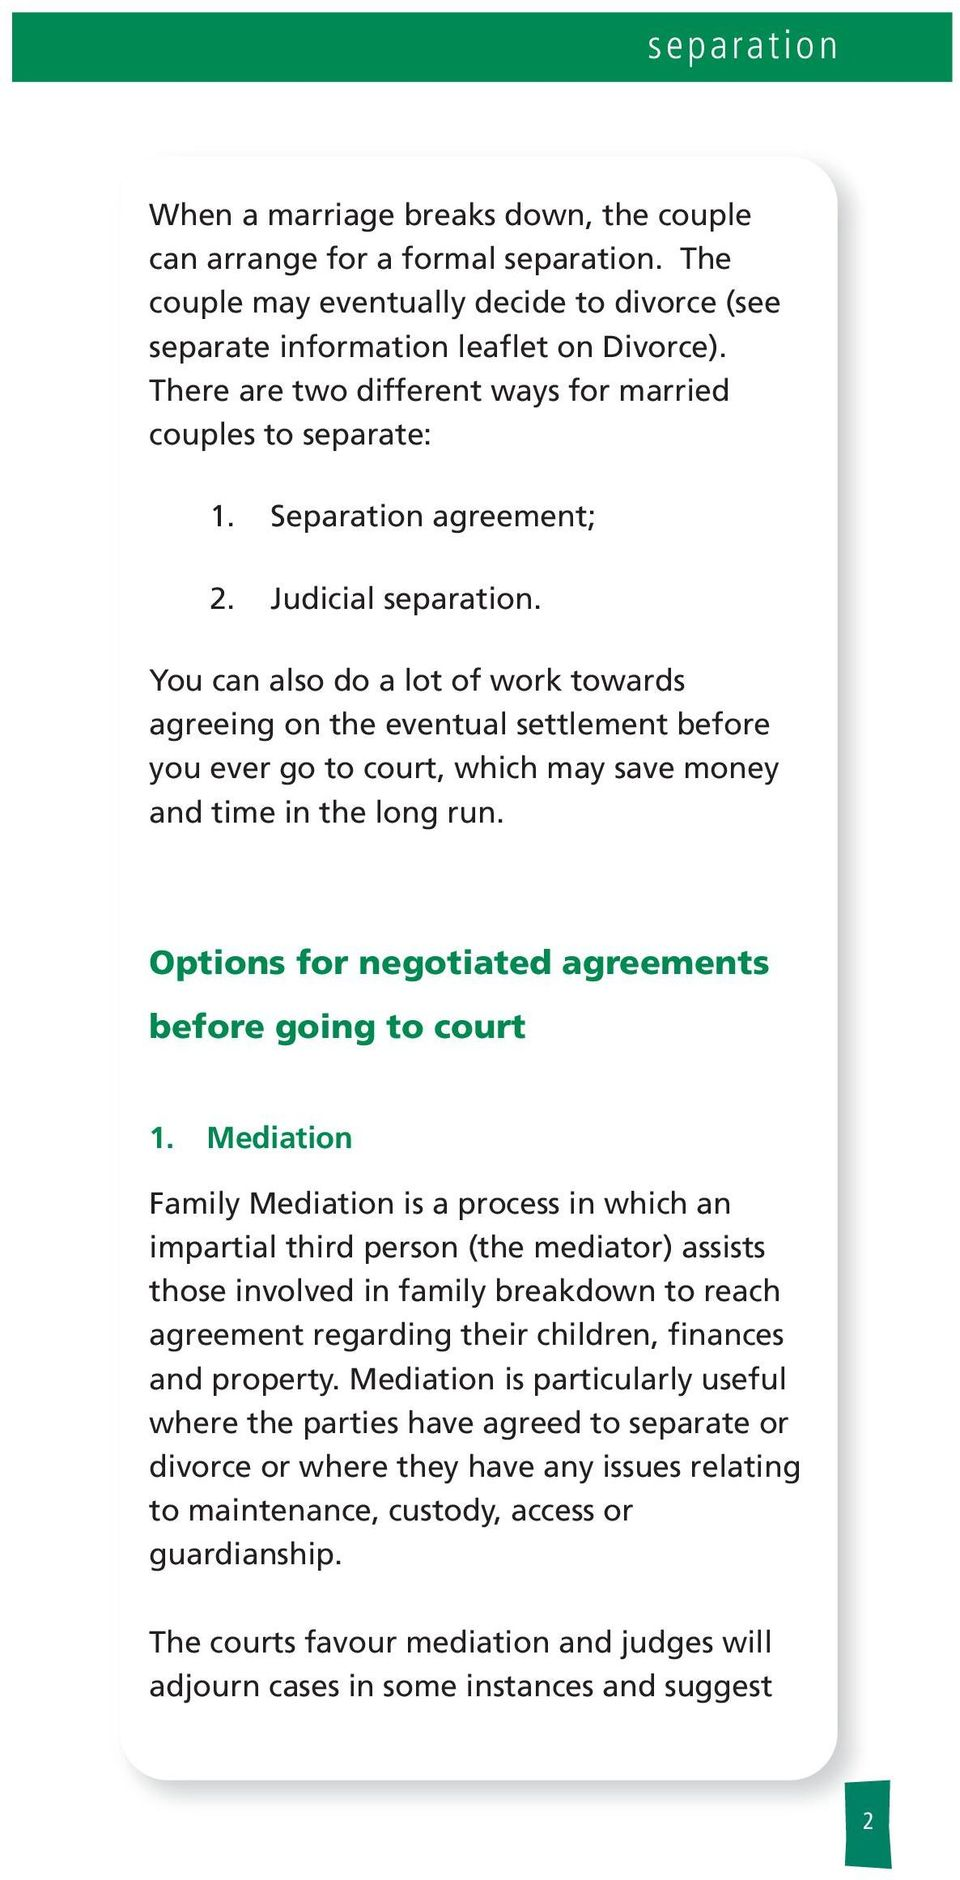 You can aso do a ot of work towards agreeing on the eventua settement before you ever go to court, which may save money and time in the ong run.